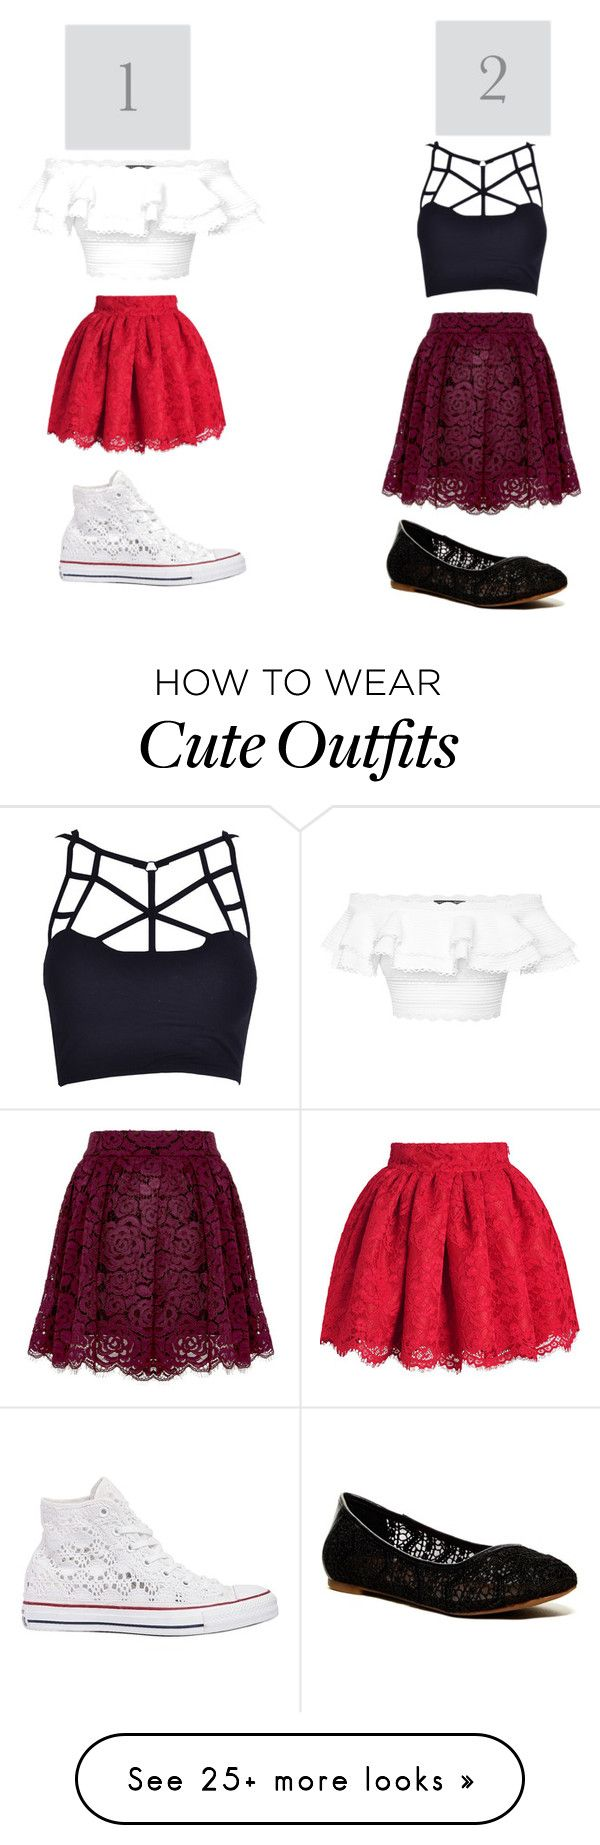 """""""Do Like Outfit 1 or 2 better"""" by hnashared on Polyvore featuring Alice + Olivia, Alexander McQueen, Lucky Brand and Converse"""